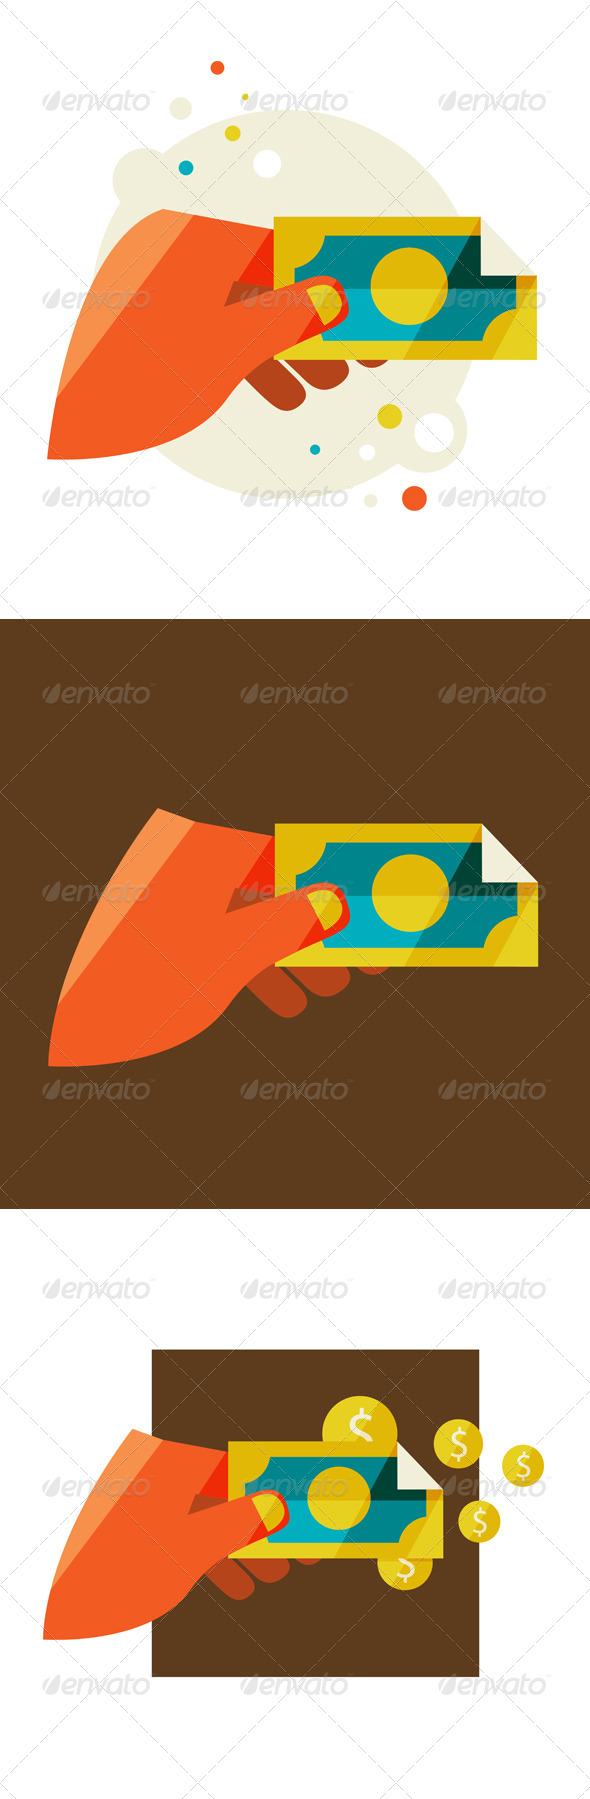 GraphicRiver Man s Hand Holding a Banknote 6966128